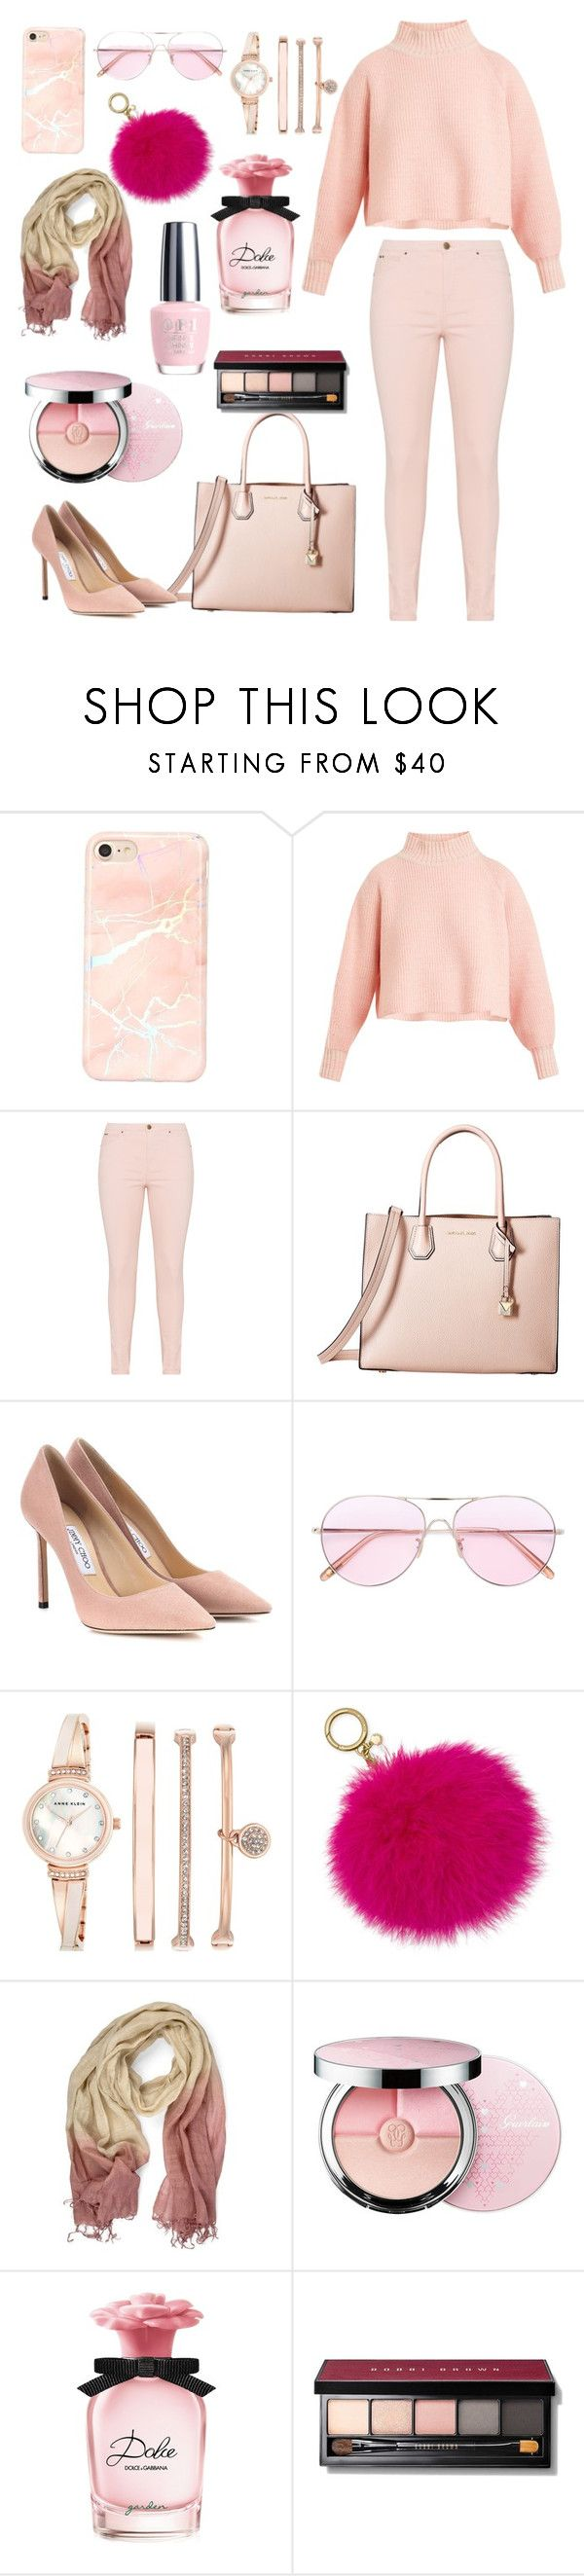 """Pink Fashion"" by brunaelle-minet ❤ liked on Polyvore featuring Vika Gazinskaya, MICHAEL Michael Kors, Jimmy Choo, Oliver Peoples, Anne Klein, Michael Kors, Guerlain, Dolce&Gabbana, OPI and Bobbi Brown Cosmetics"